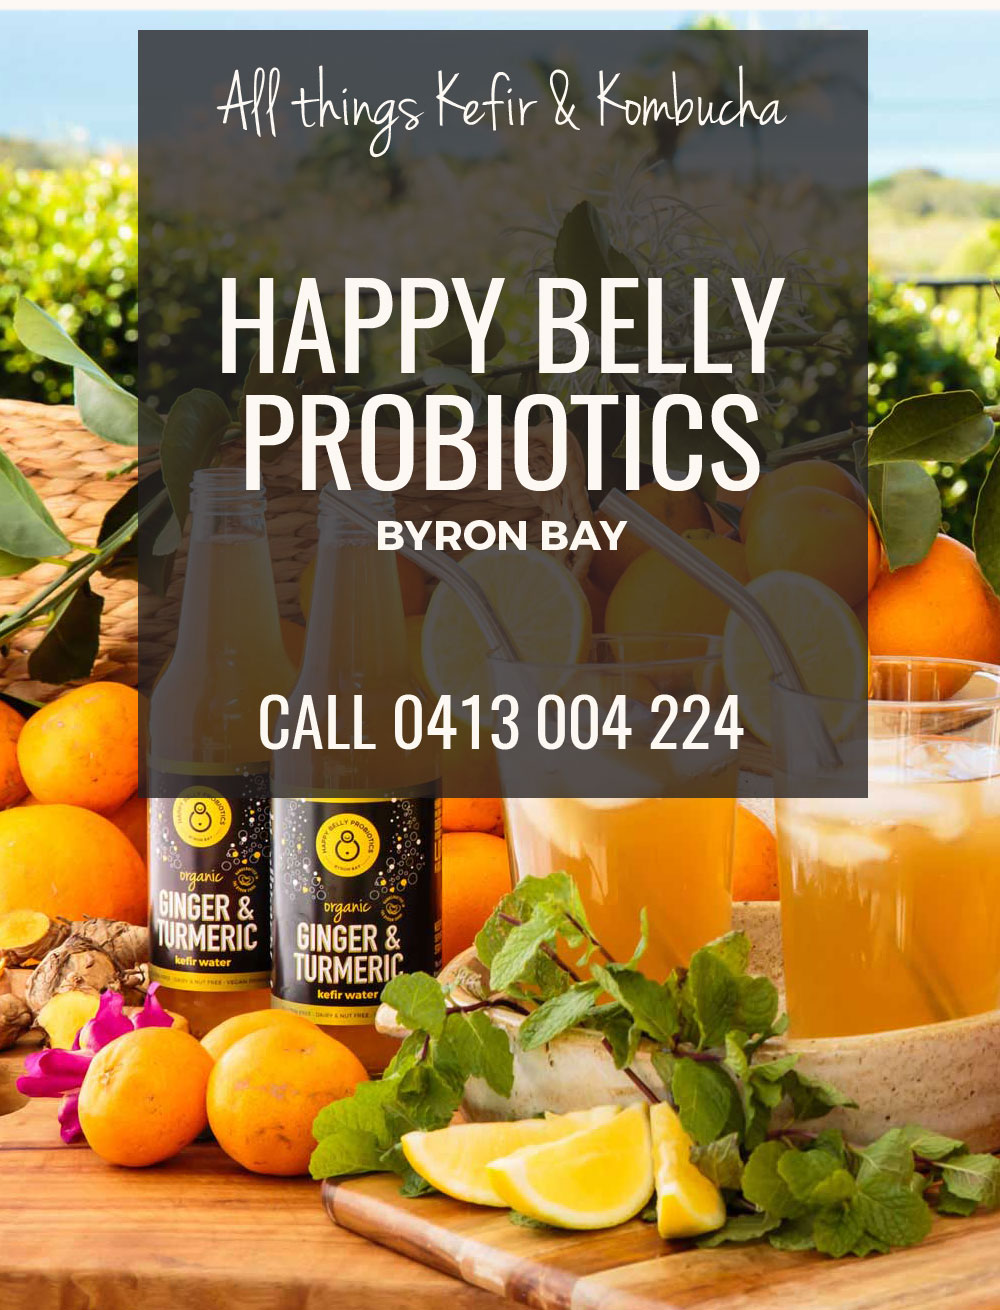 Call Happy Belly Probiotics 0413 004 224